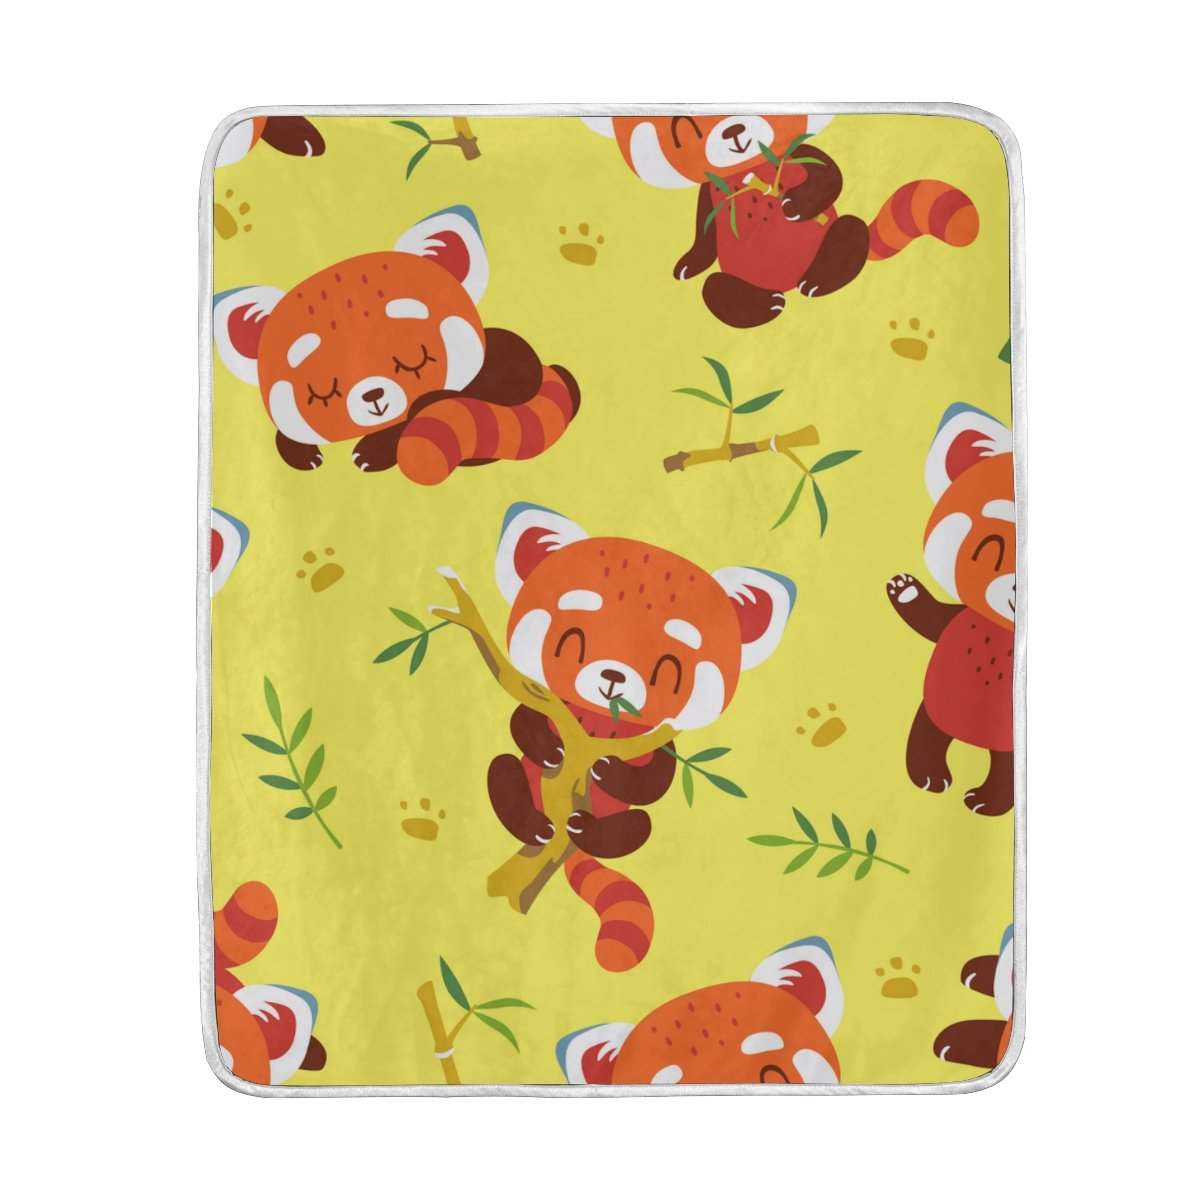 My Little Nest Warm Throw Blanket Cartoon Red Panda Yellow Lightweight Microfiber Soft Blanket Everyday Use for Bed Couch Sofa 50'' x 60'' by My Little Nest